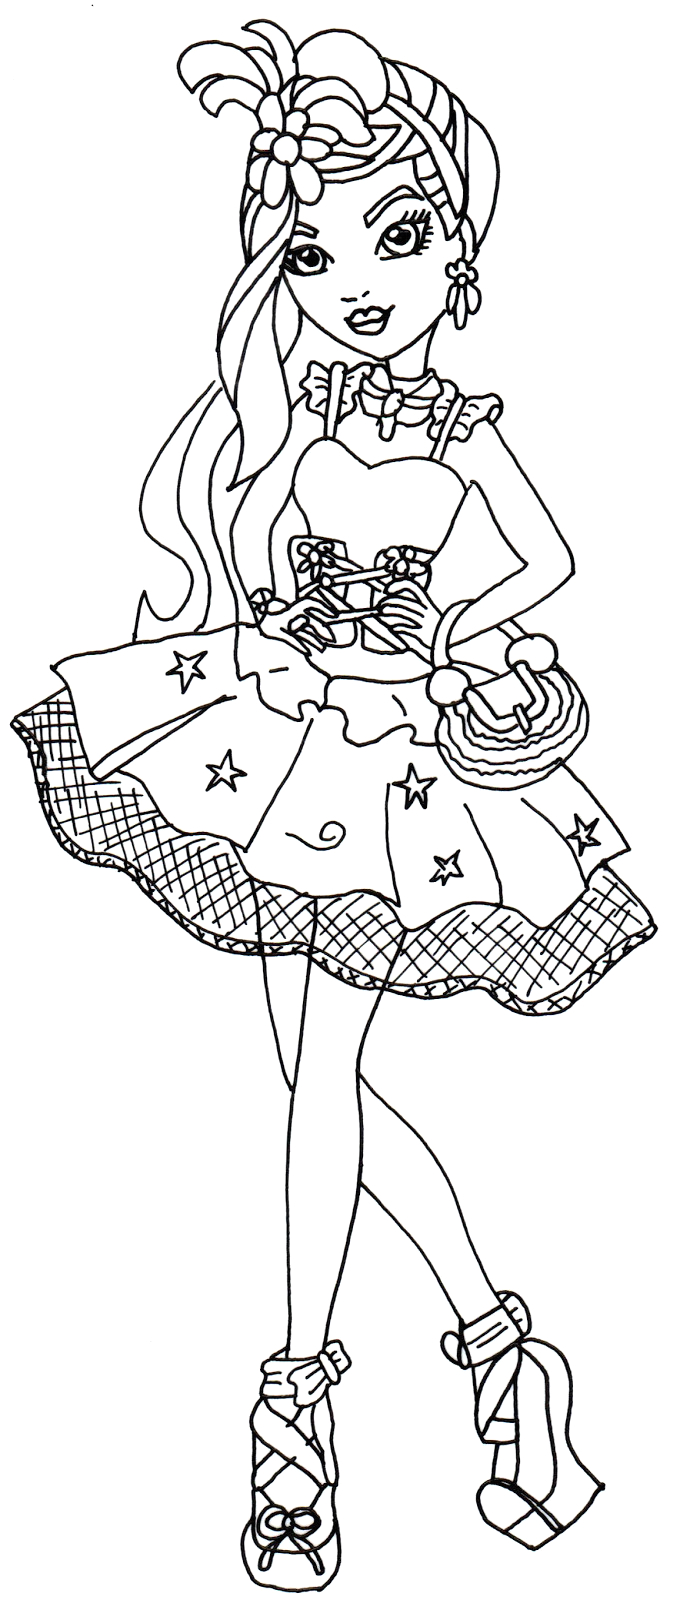 dragon ever after high coloring pages